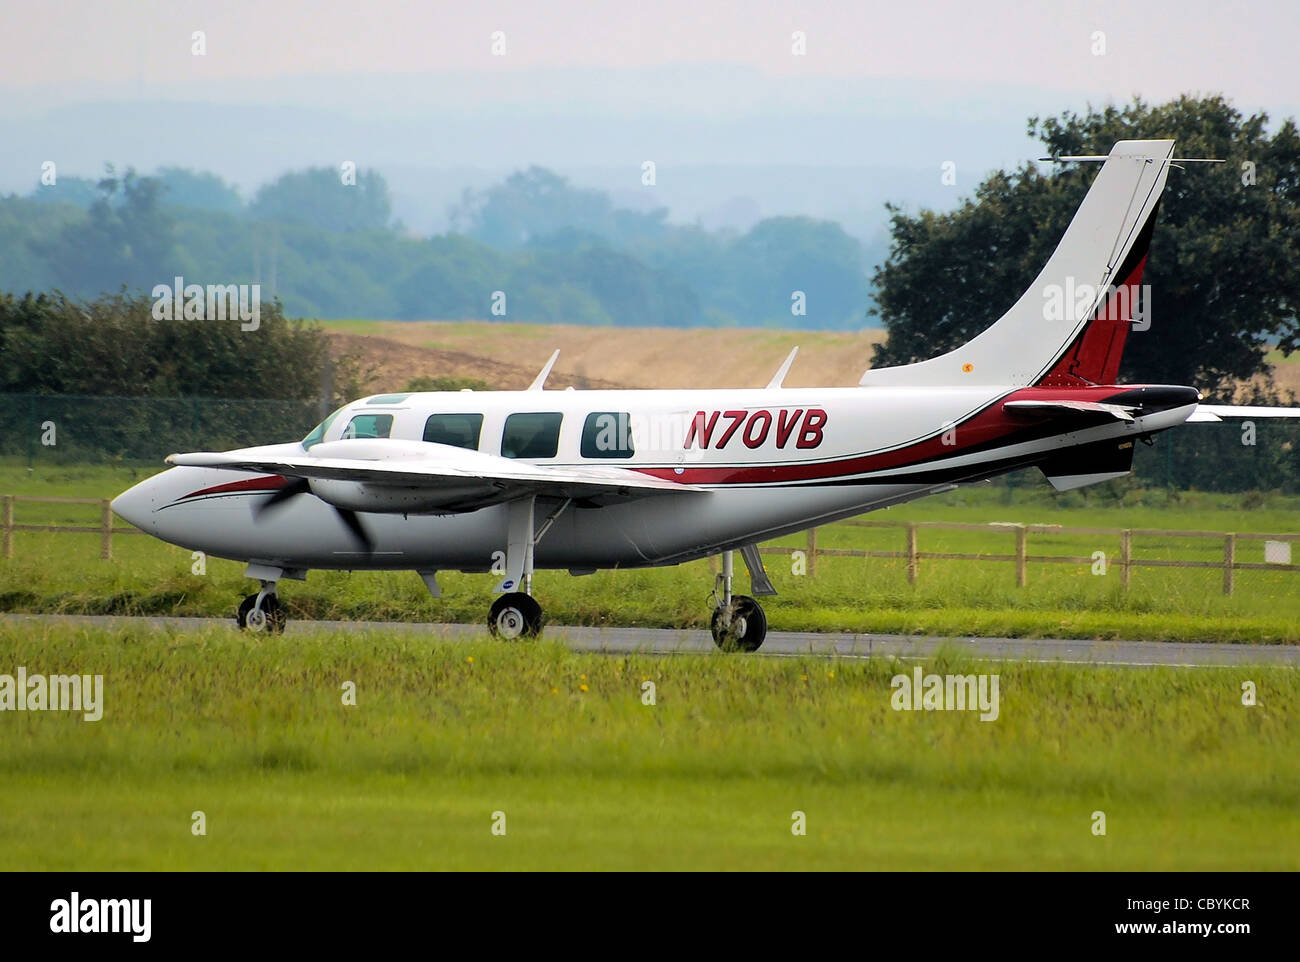 Piper PA-60-600 Aerostar (N70VB) at Kemble Airport 2008 Open Weekend, Gloucestershire, England - Stock Image